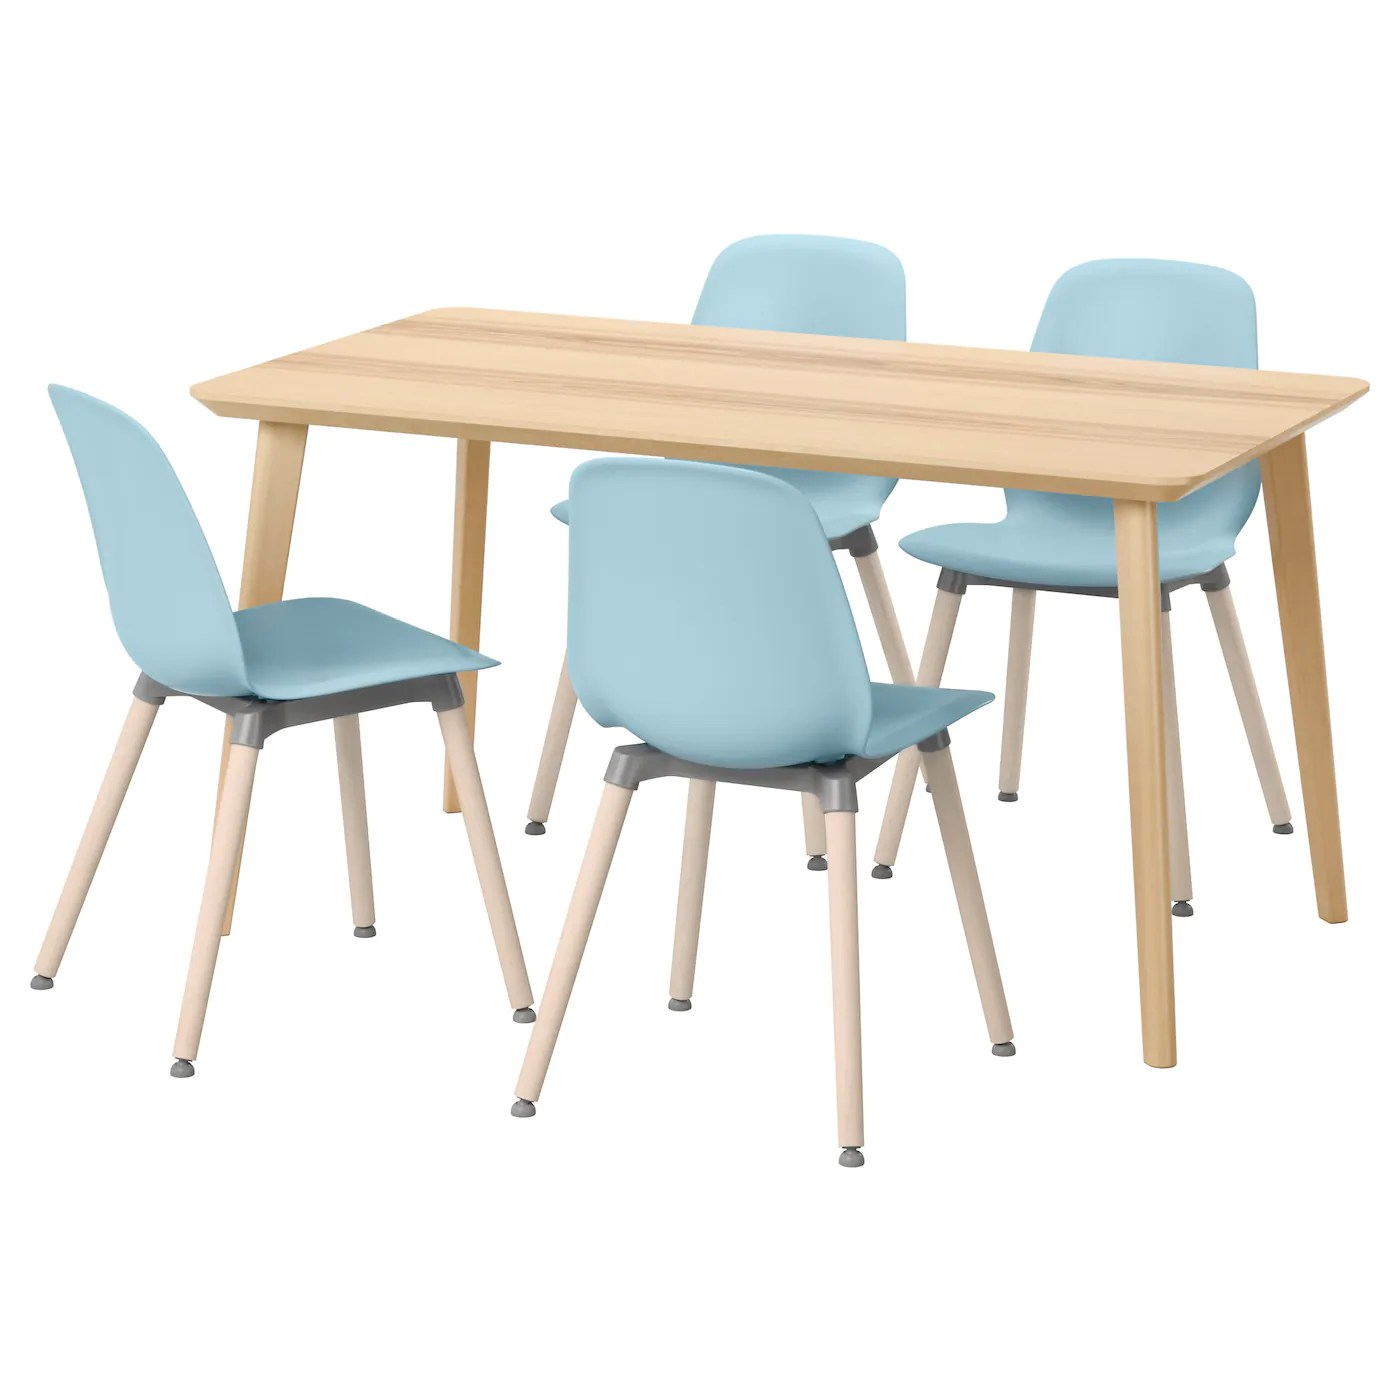 Table 140 Leifarne Lisabo Table And 4 Chairs Ash Veneer Light Blue 140 X 78 Cm Ikea